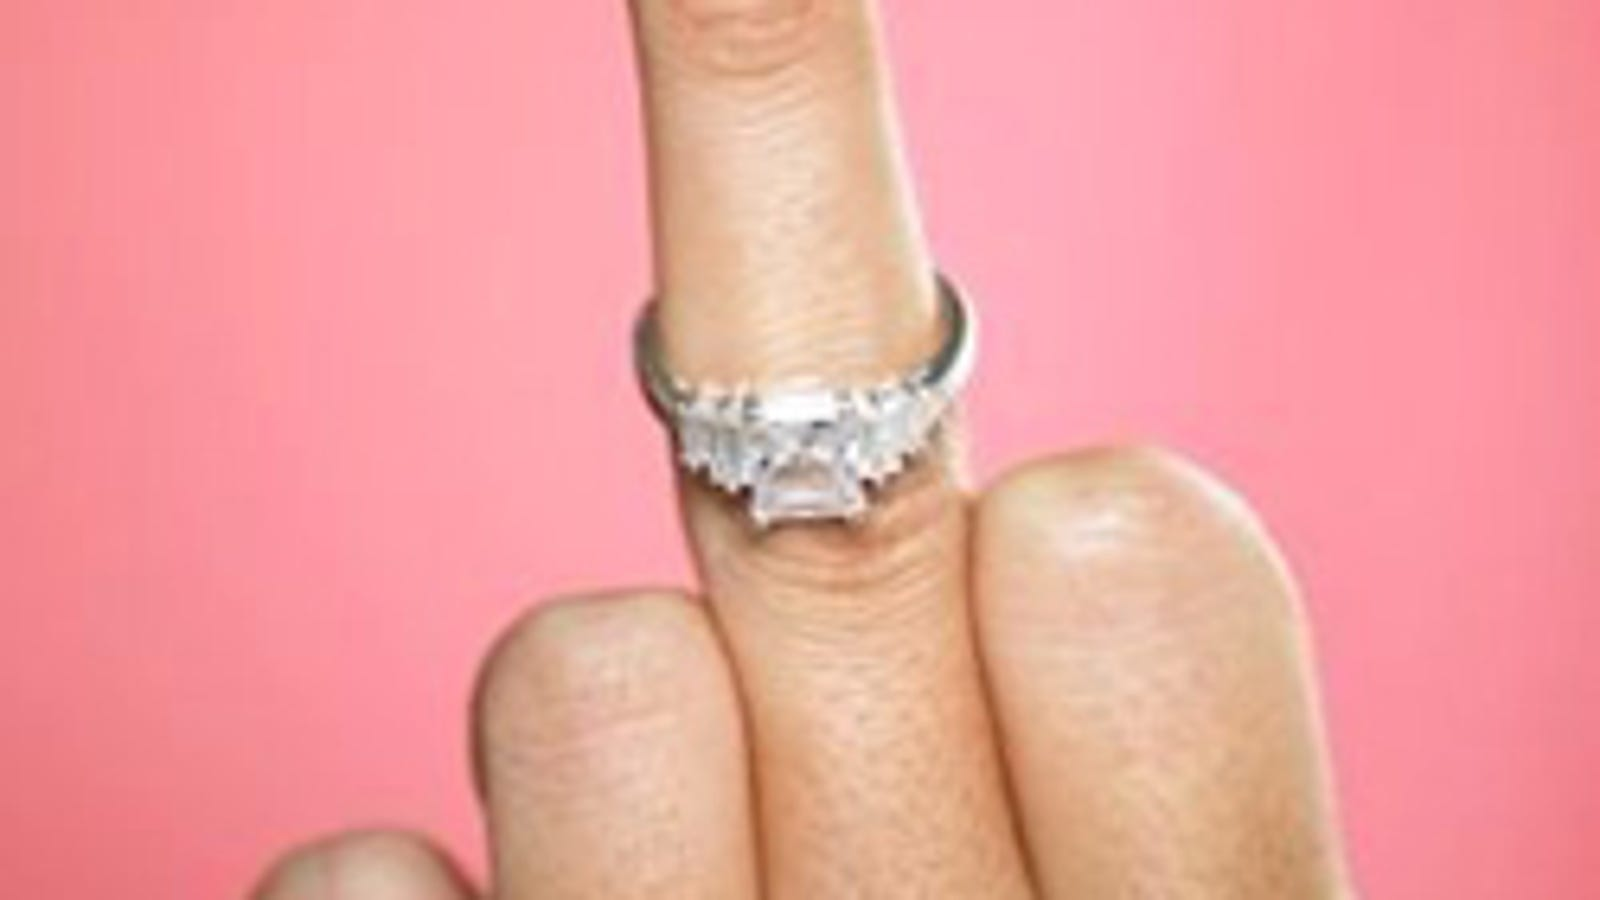 Rites Of Passage: Throwing Your Engagement Ring In Anger